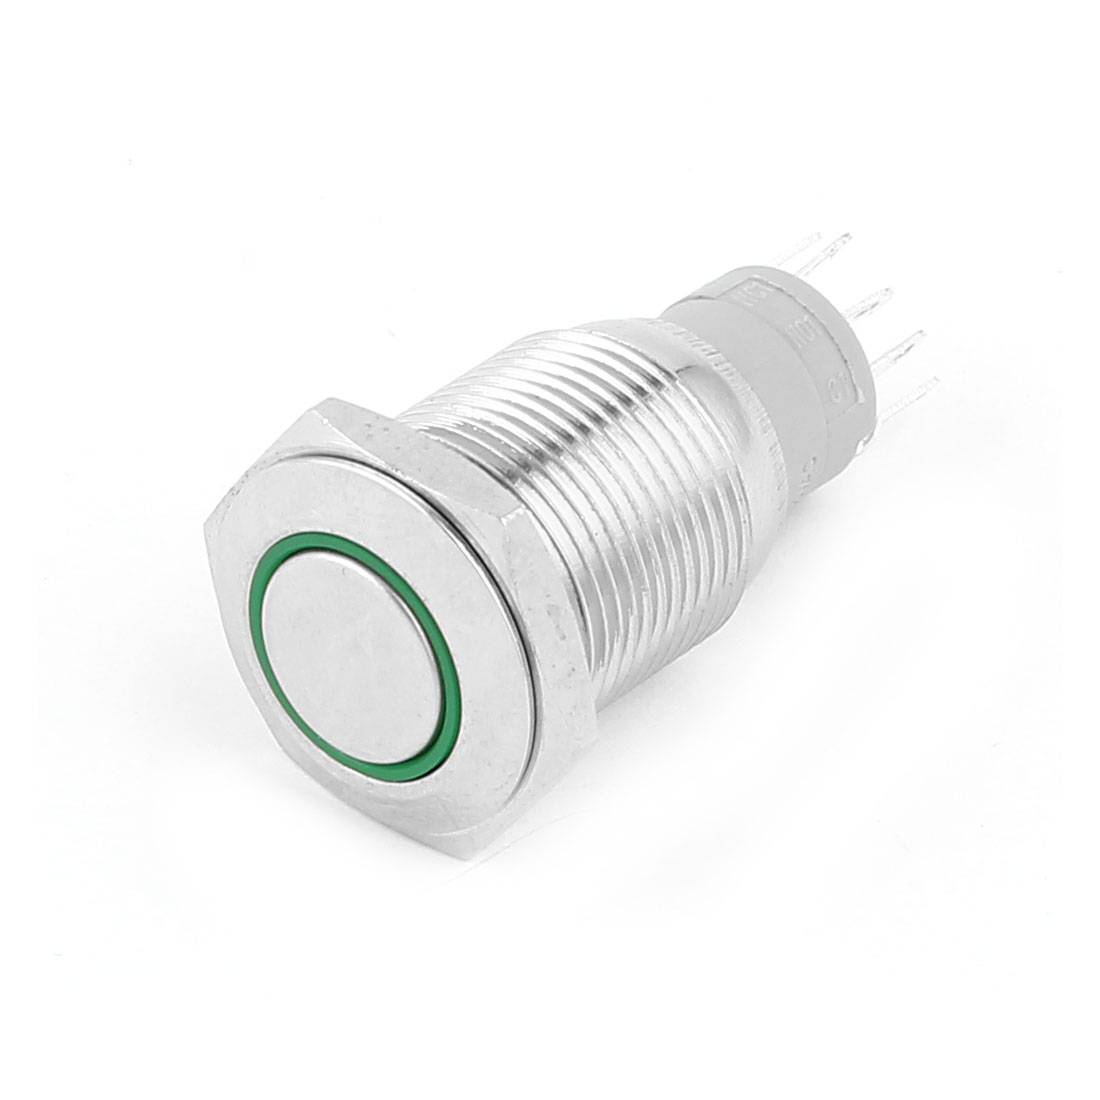 DC 12V Green Angel Eye Power Symbol LED Light SPDT 1NO 1NC 5 Pins Momentary Metal Push Button Switch 16mm